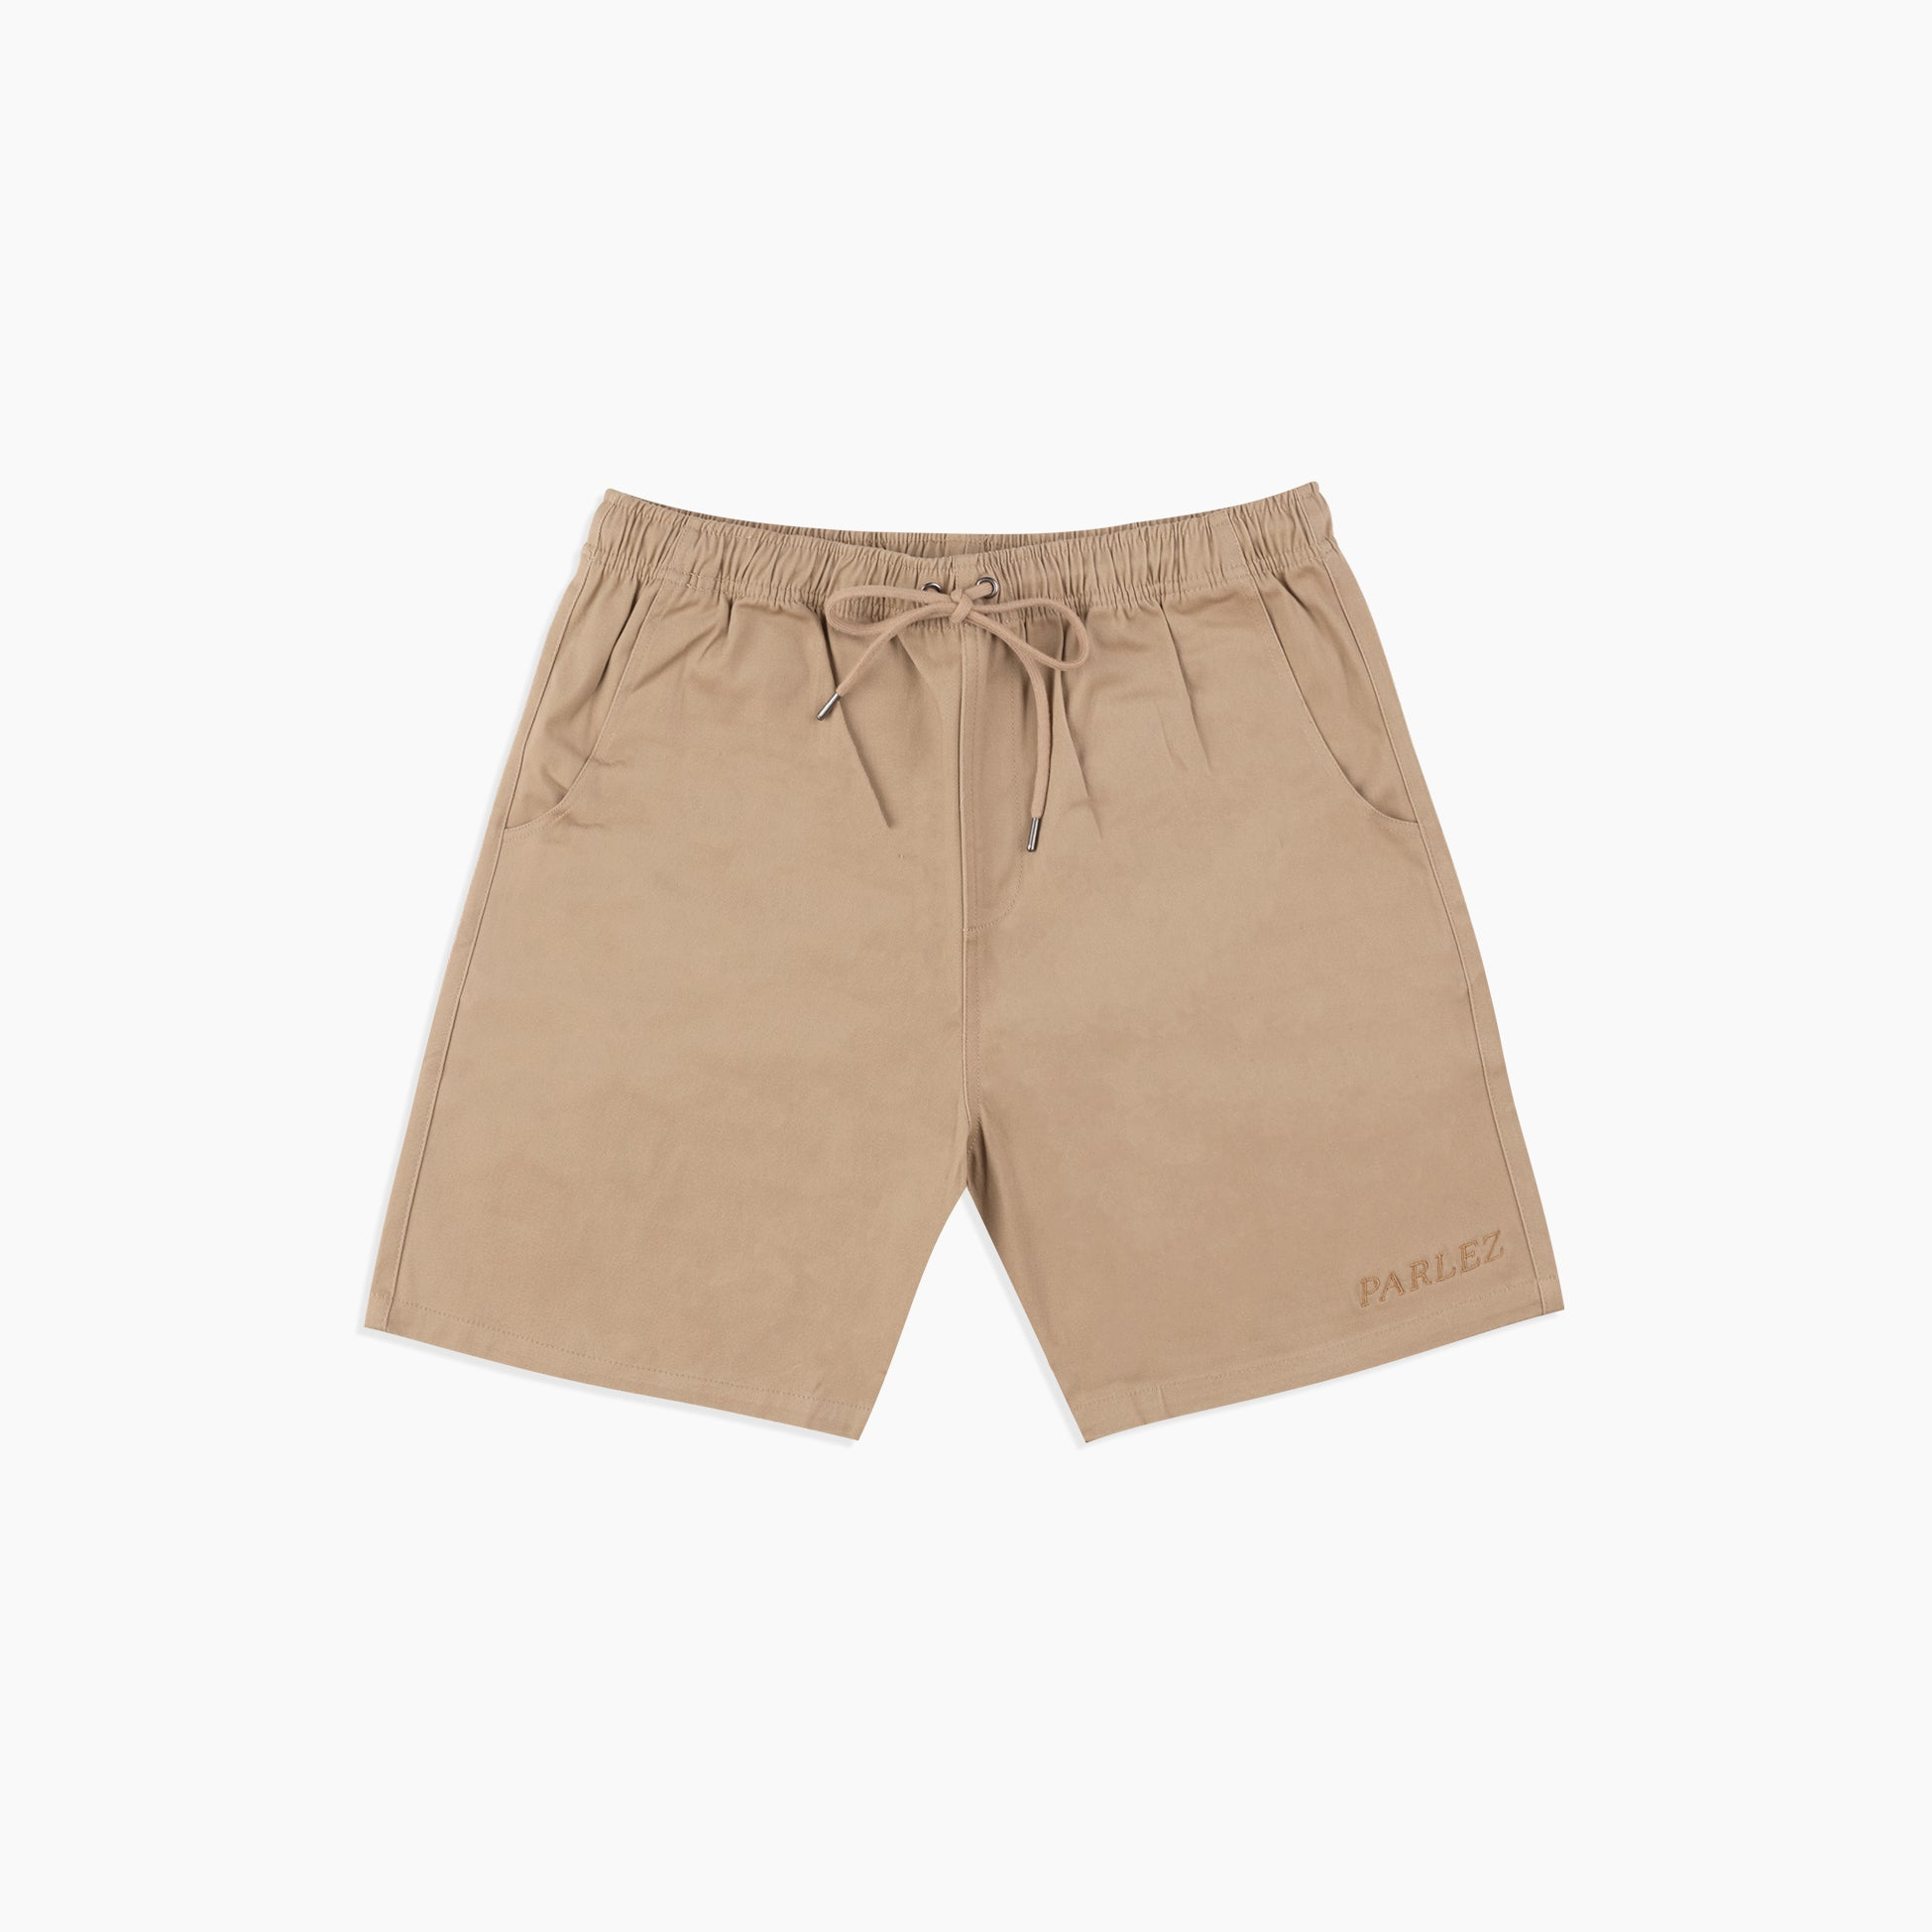 Parlez Ron Short Tan